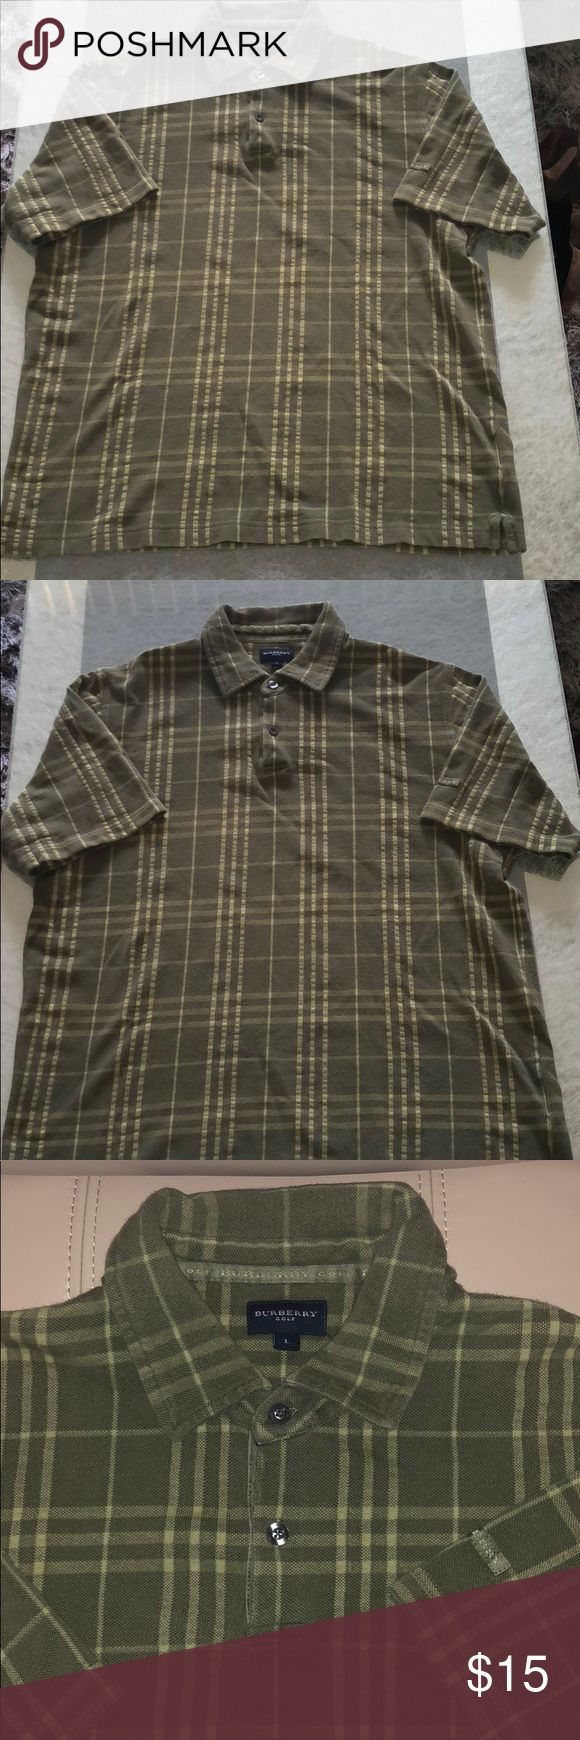 Burberry  polo shirt Men L olive green plaid Authentic Burberry golf polo shirt . Men size L . Short sleeve. Olive green checkered. Great addition for your Burberry collection. This shirt is preowned but plenty wear left . No stains , no tears . 100 % Cotton Burberry Shirts Polos